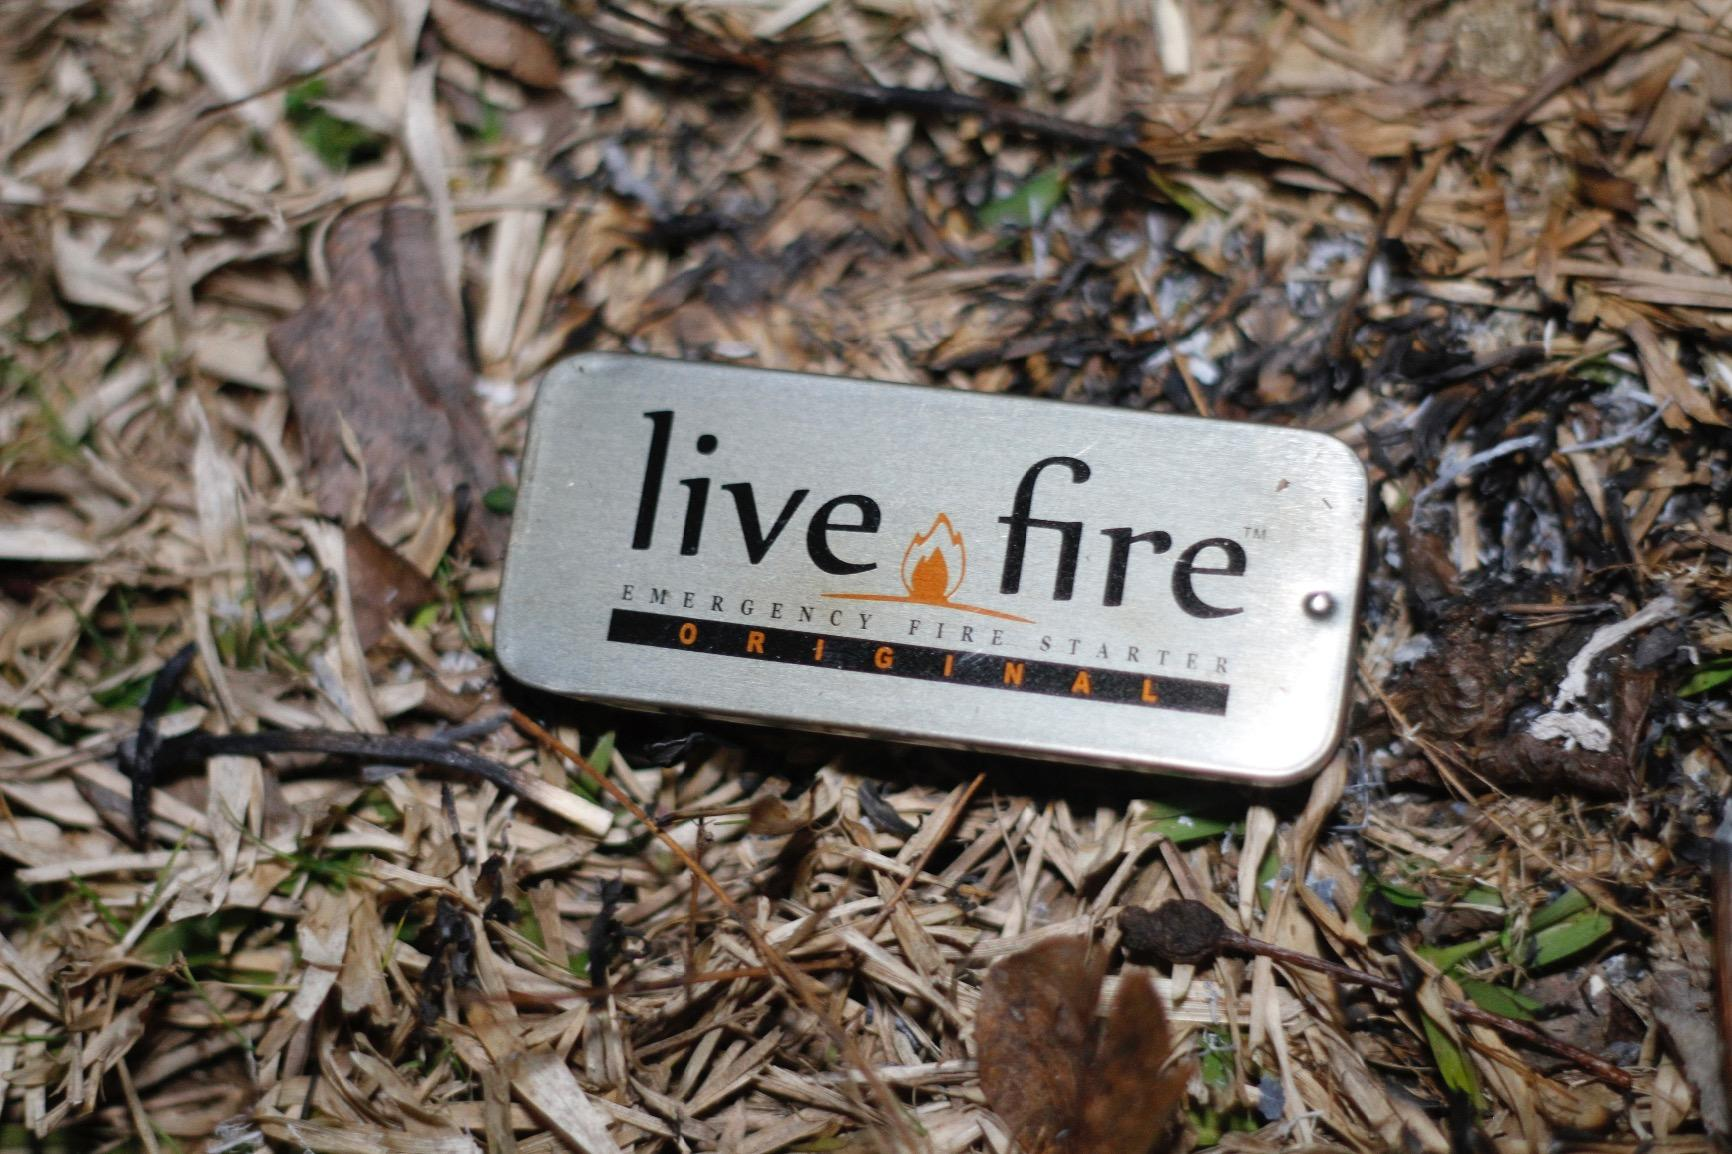 Live Fire Original - Emergency Fire Starter